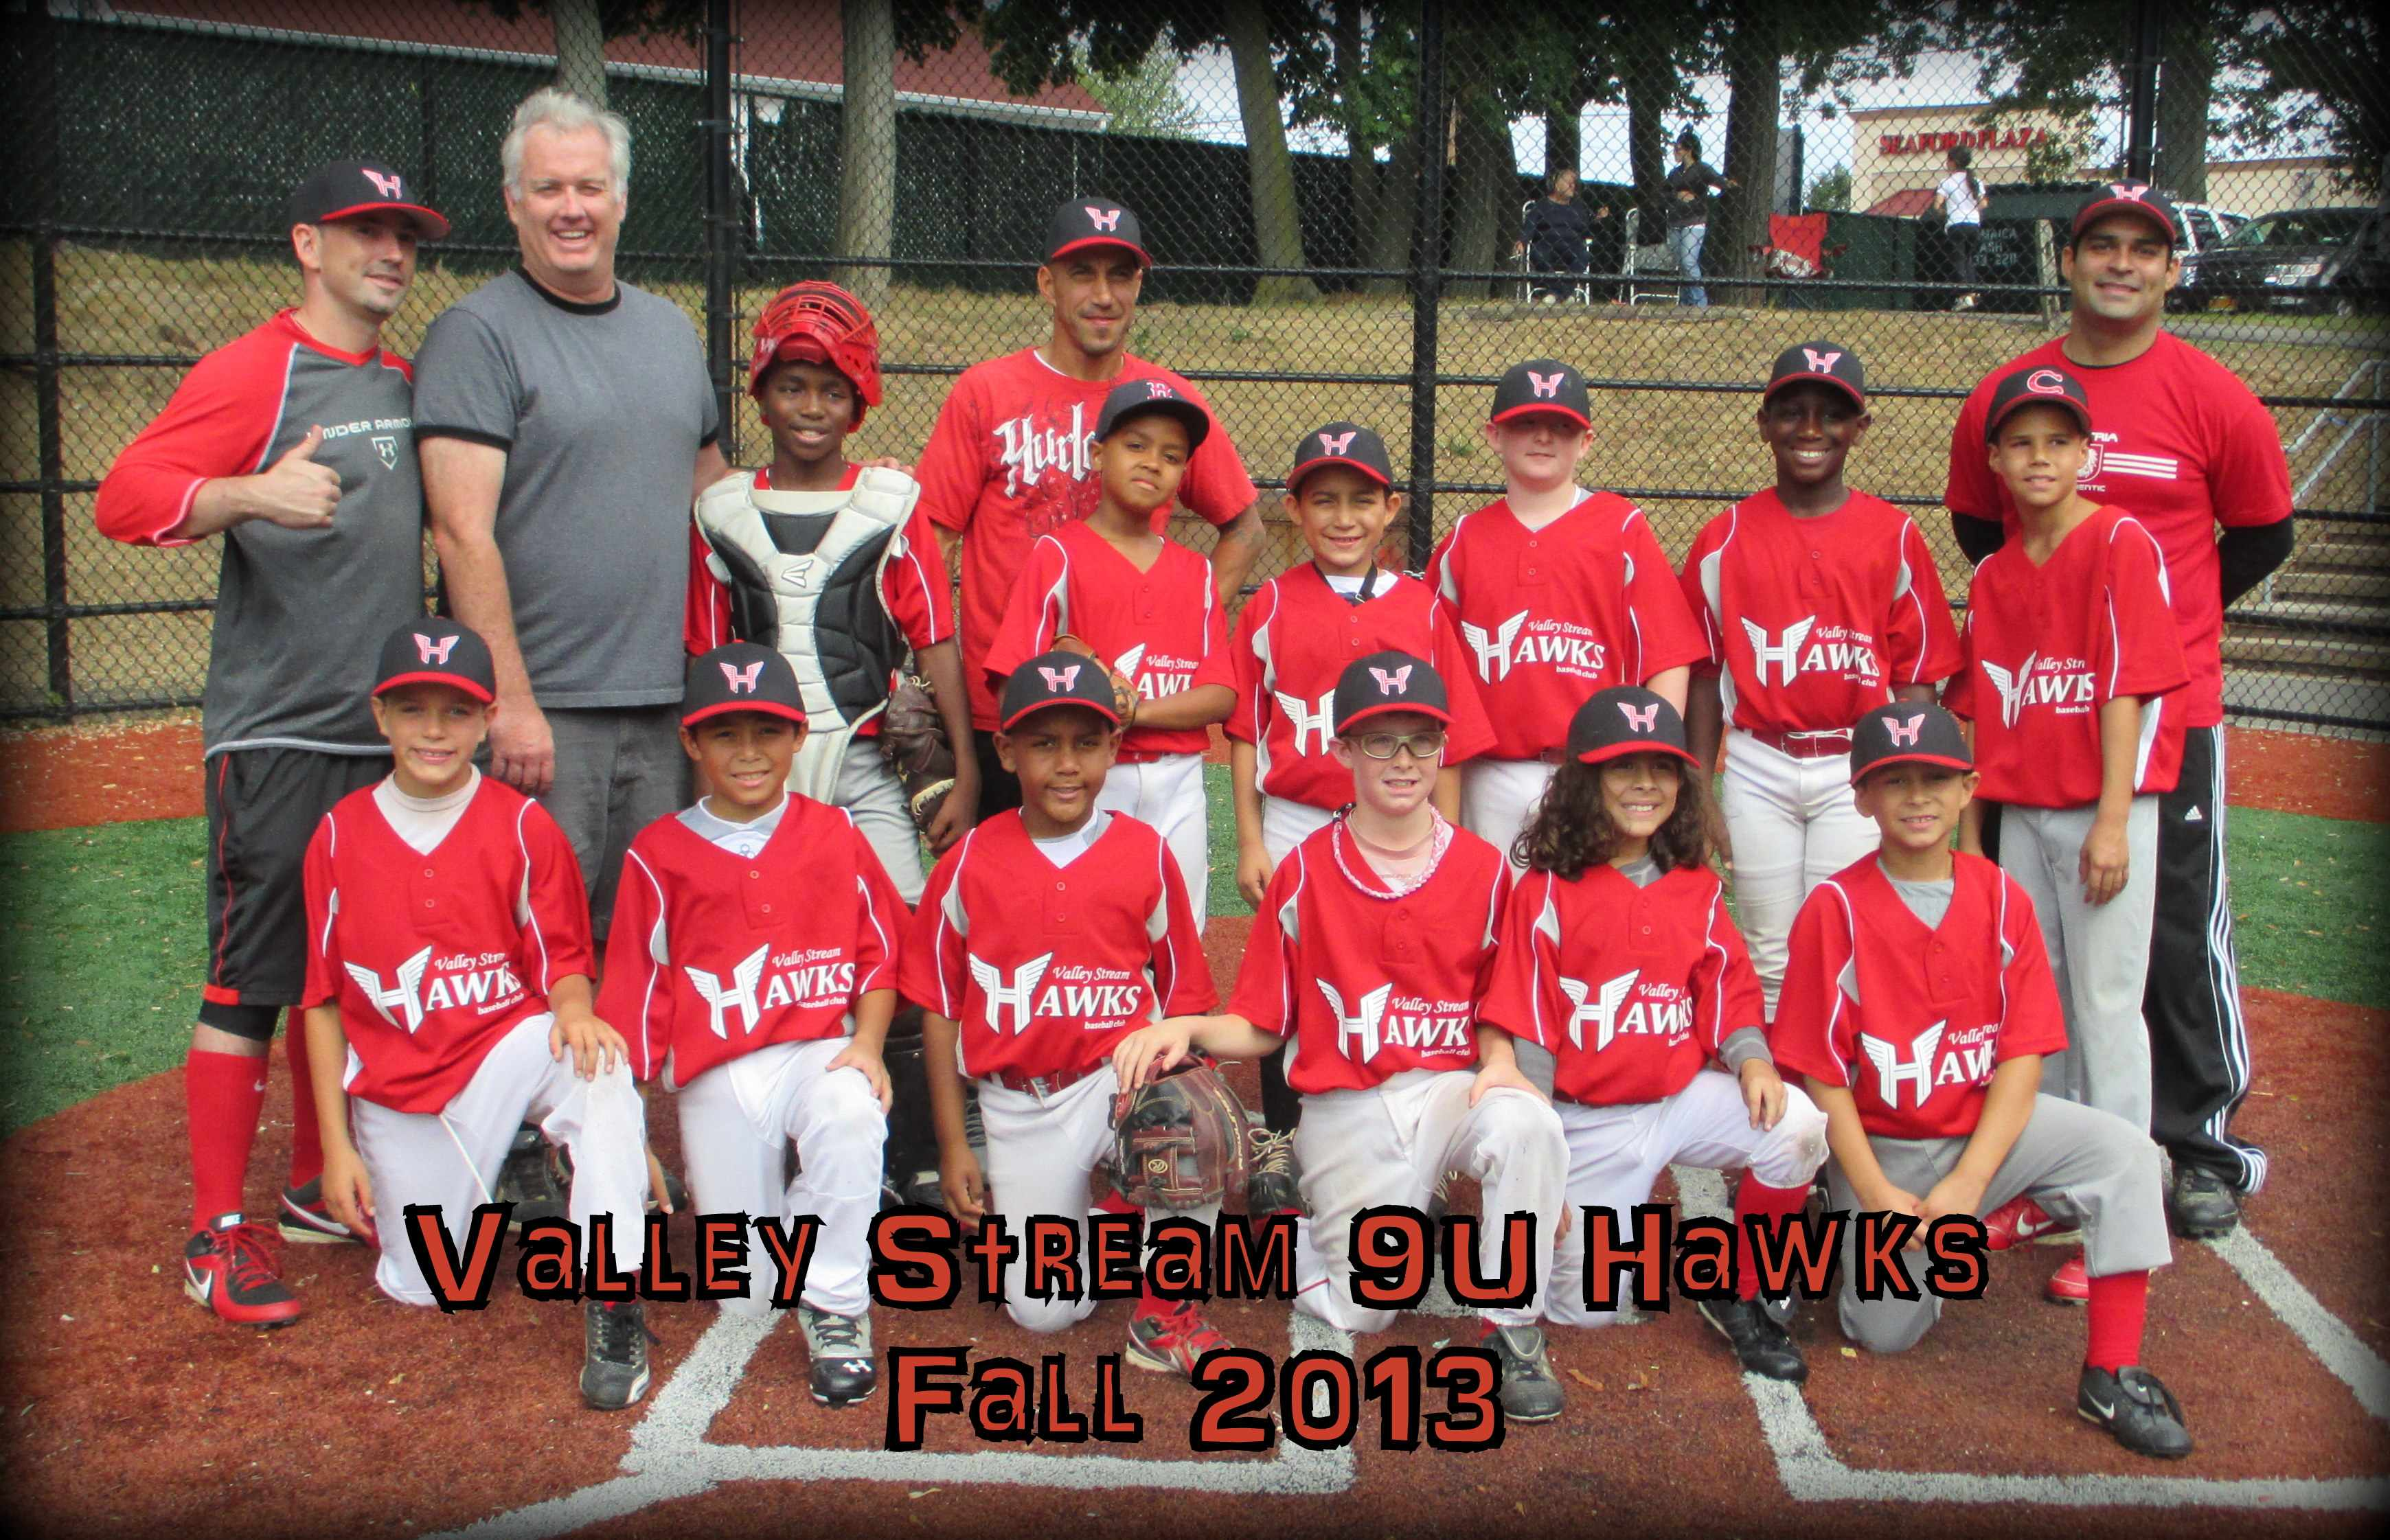 Hawks 9u Fall team - 2013